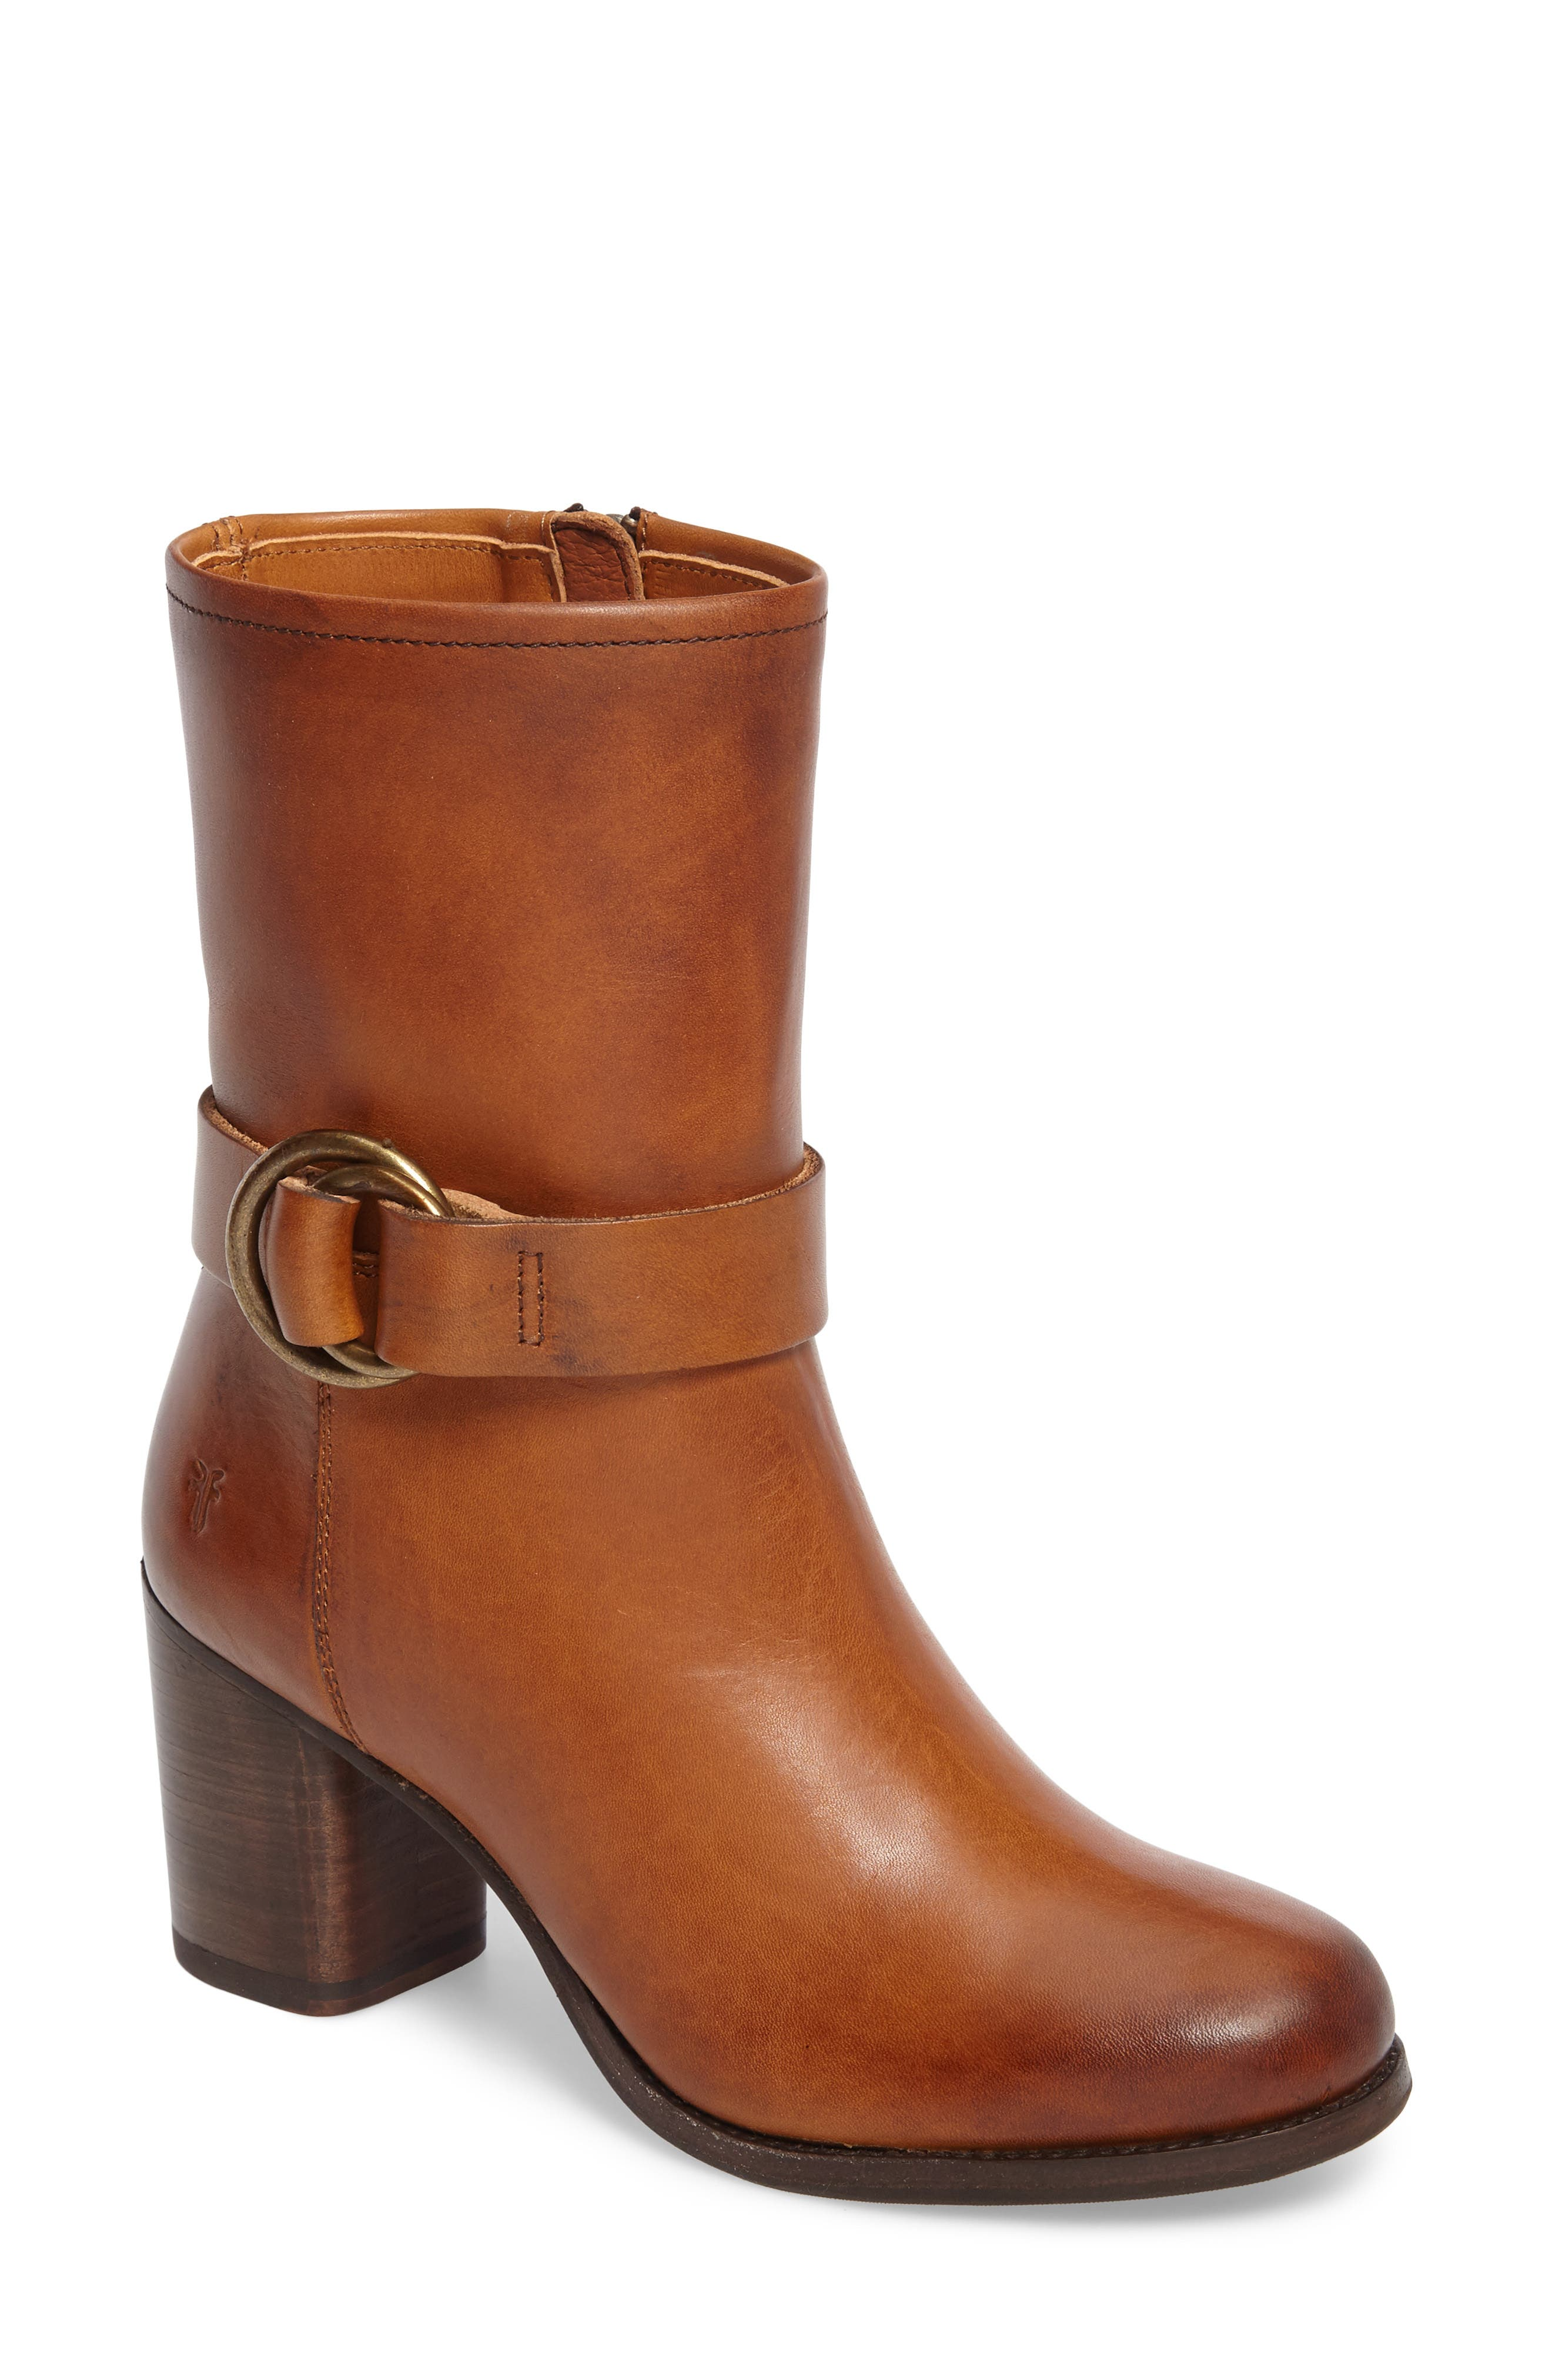 Addie Harness Boot,                             Main thumbnail 1, color,                             Brown